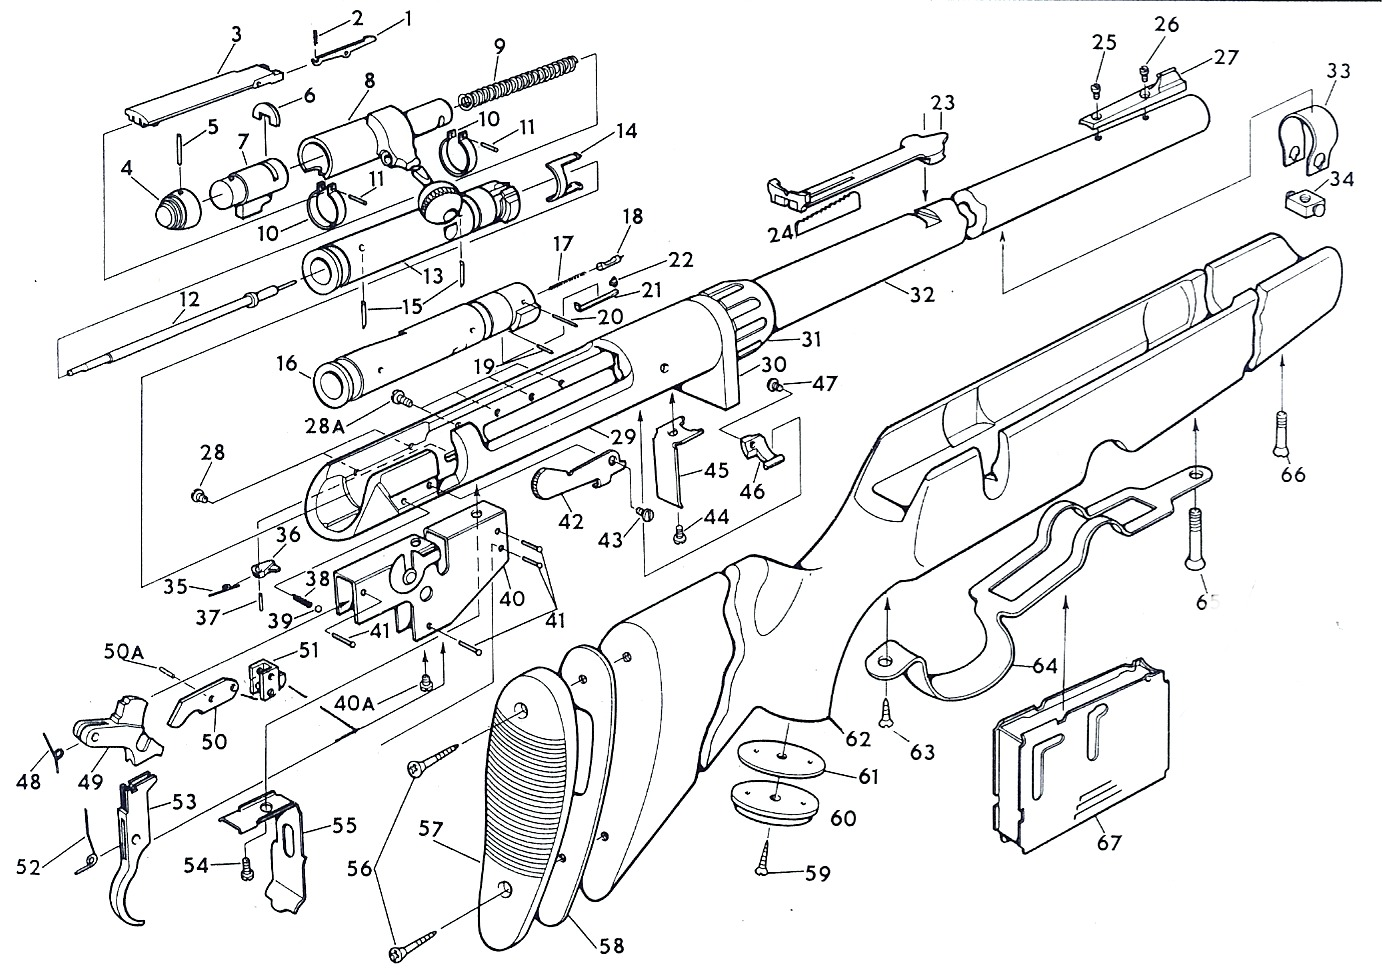 Savage 110 Parts Diagram